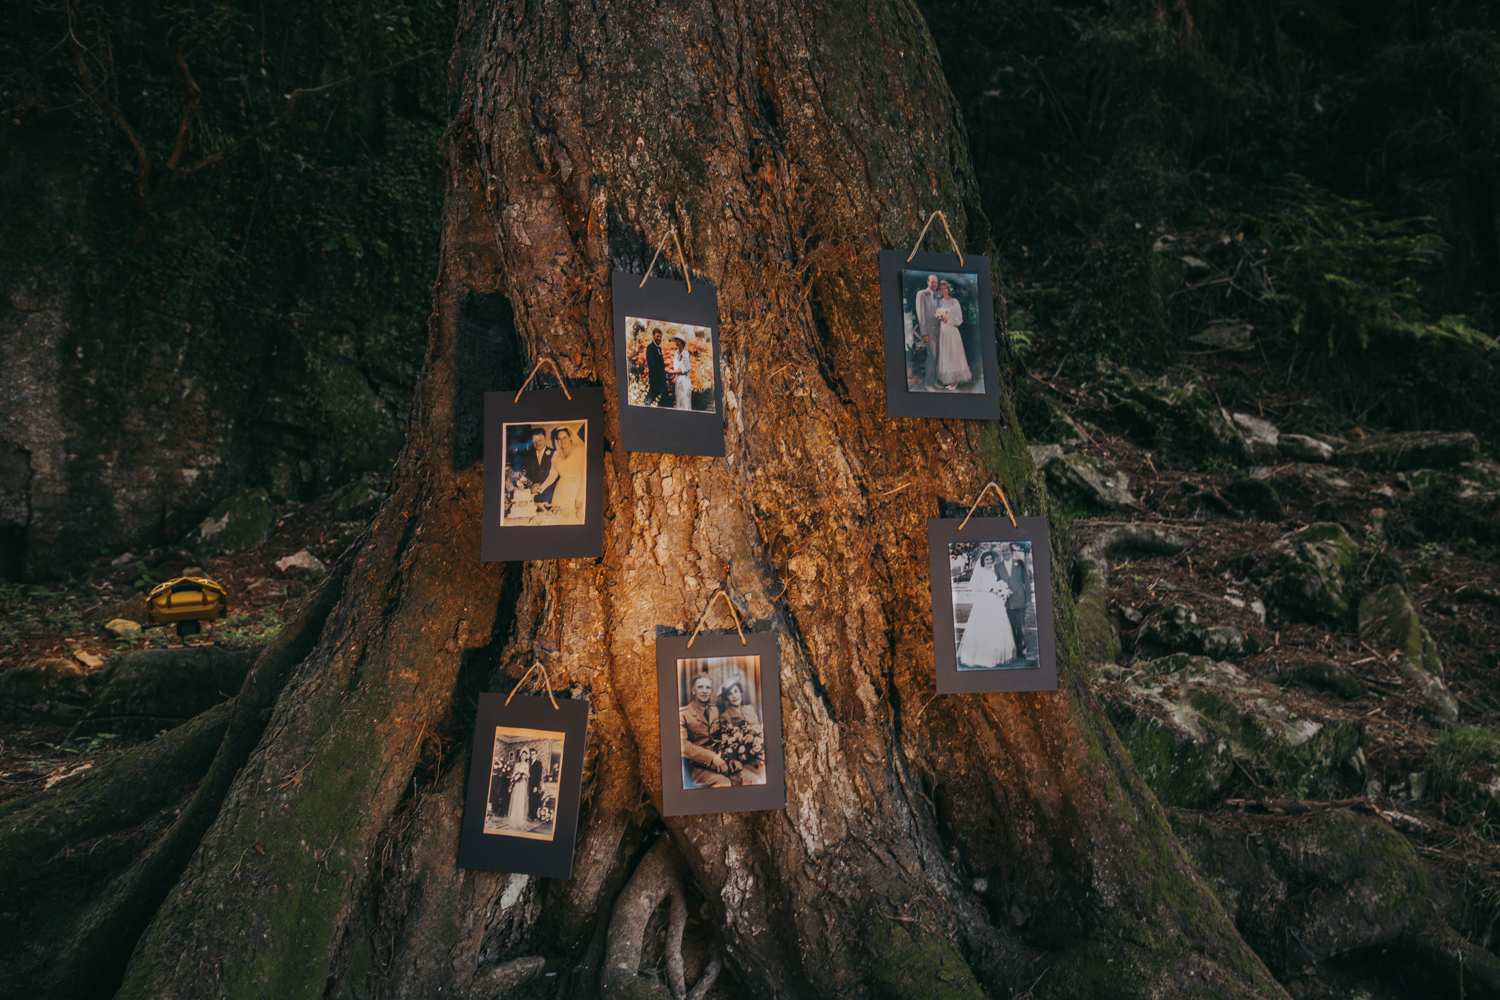 waikato-new-zealand-wedding-photographer-summer-rural-wedding-reception-details-family-wedding-photos-on-tree.jpg